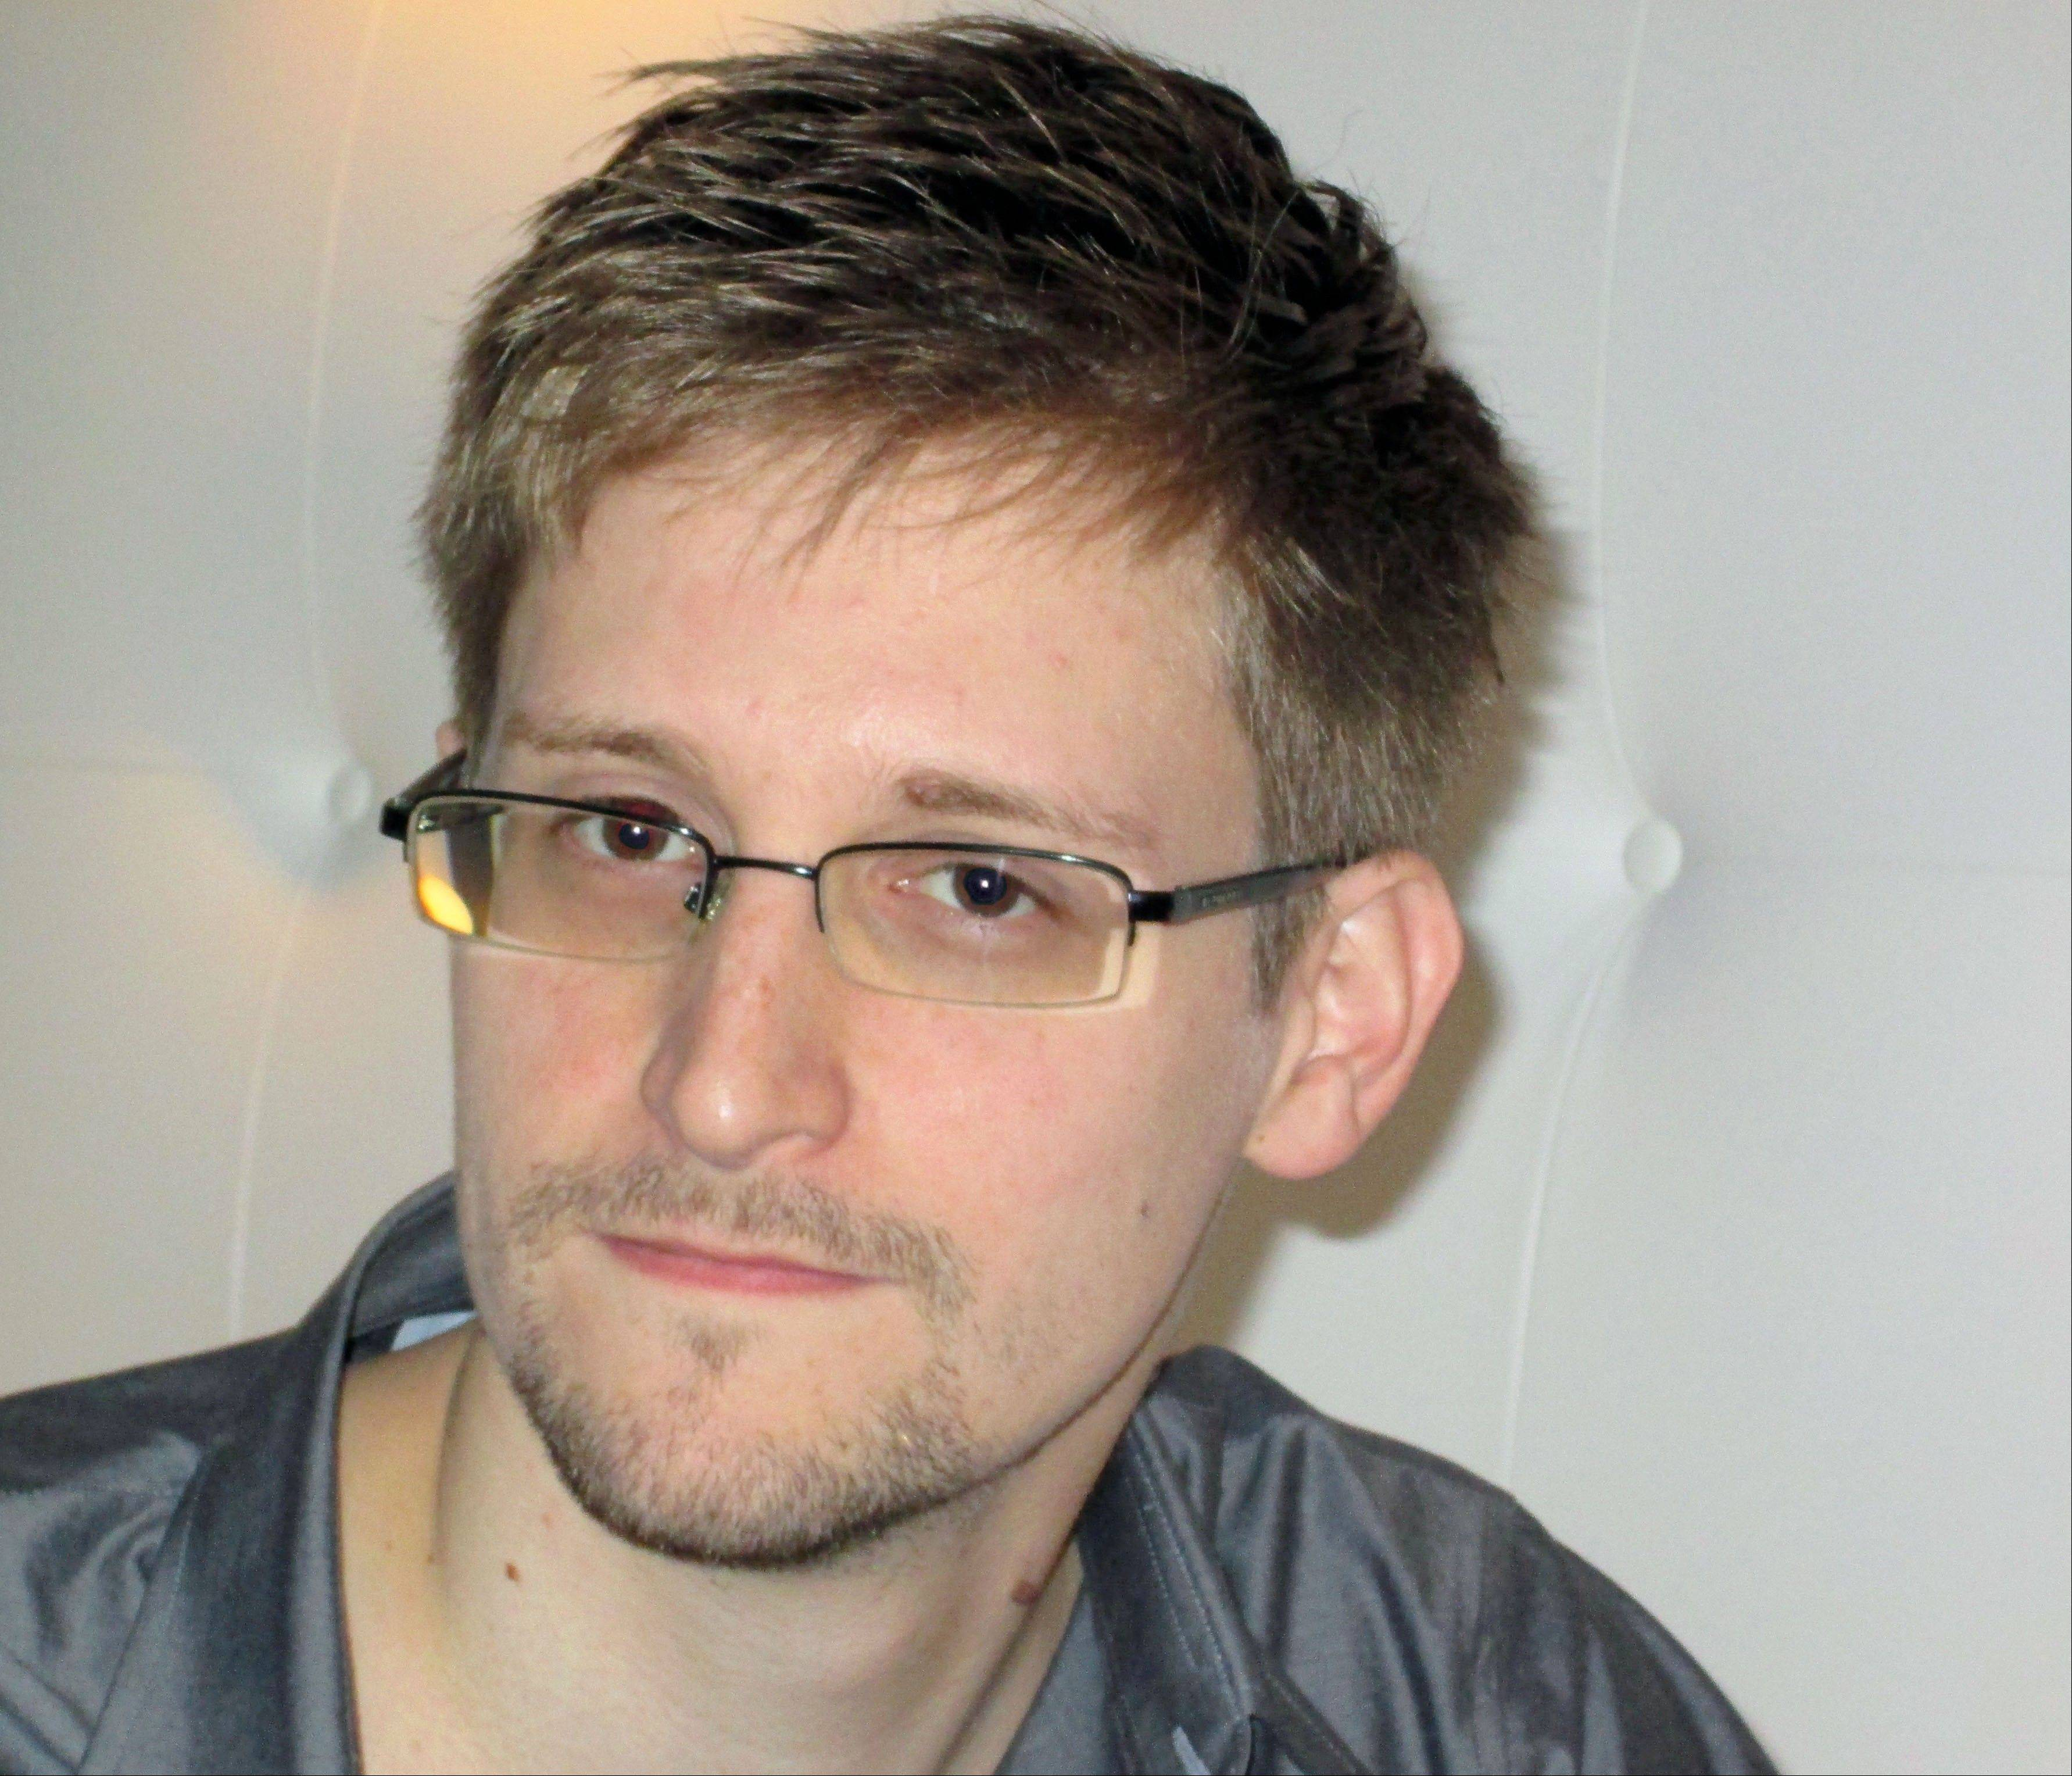 Spy agencies, attorney fiercely defend surveillance programs revealed by Snowden